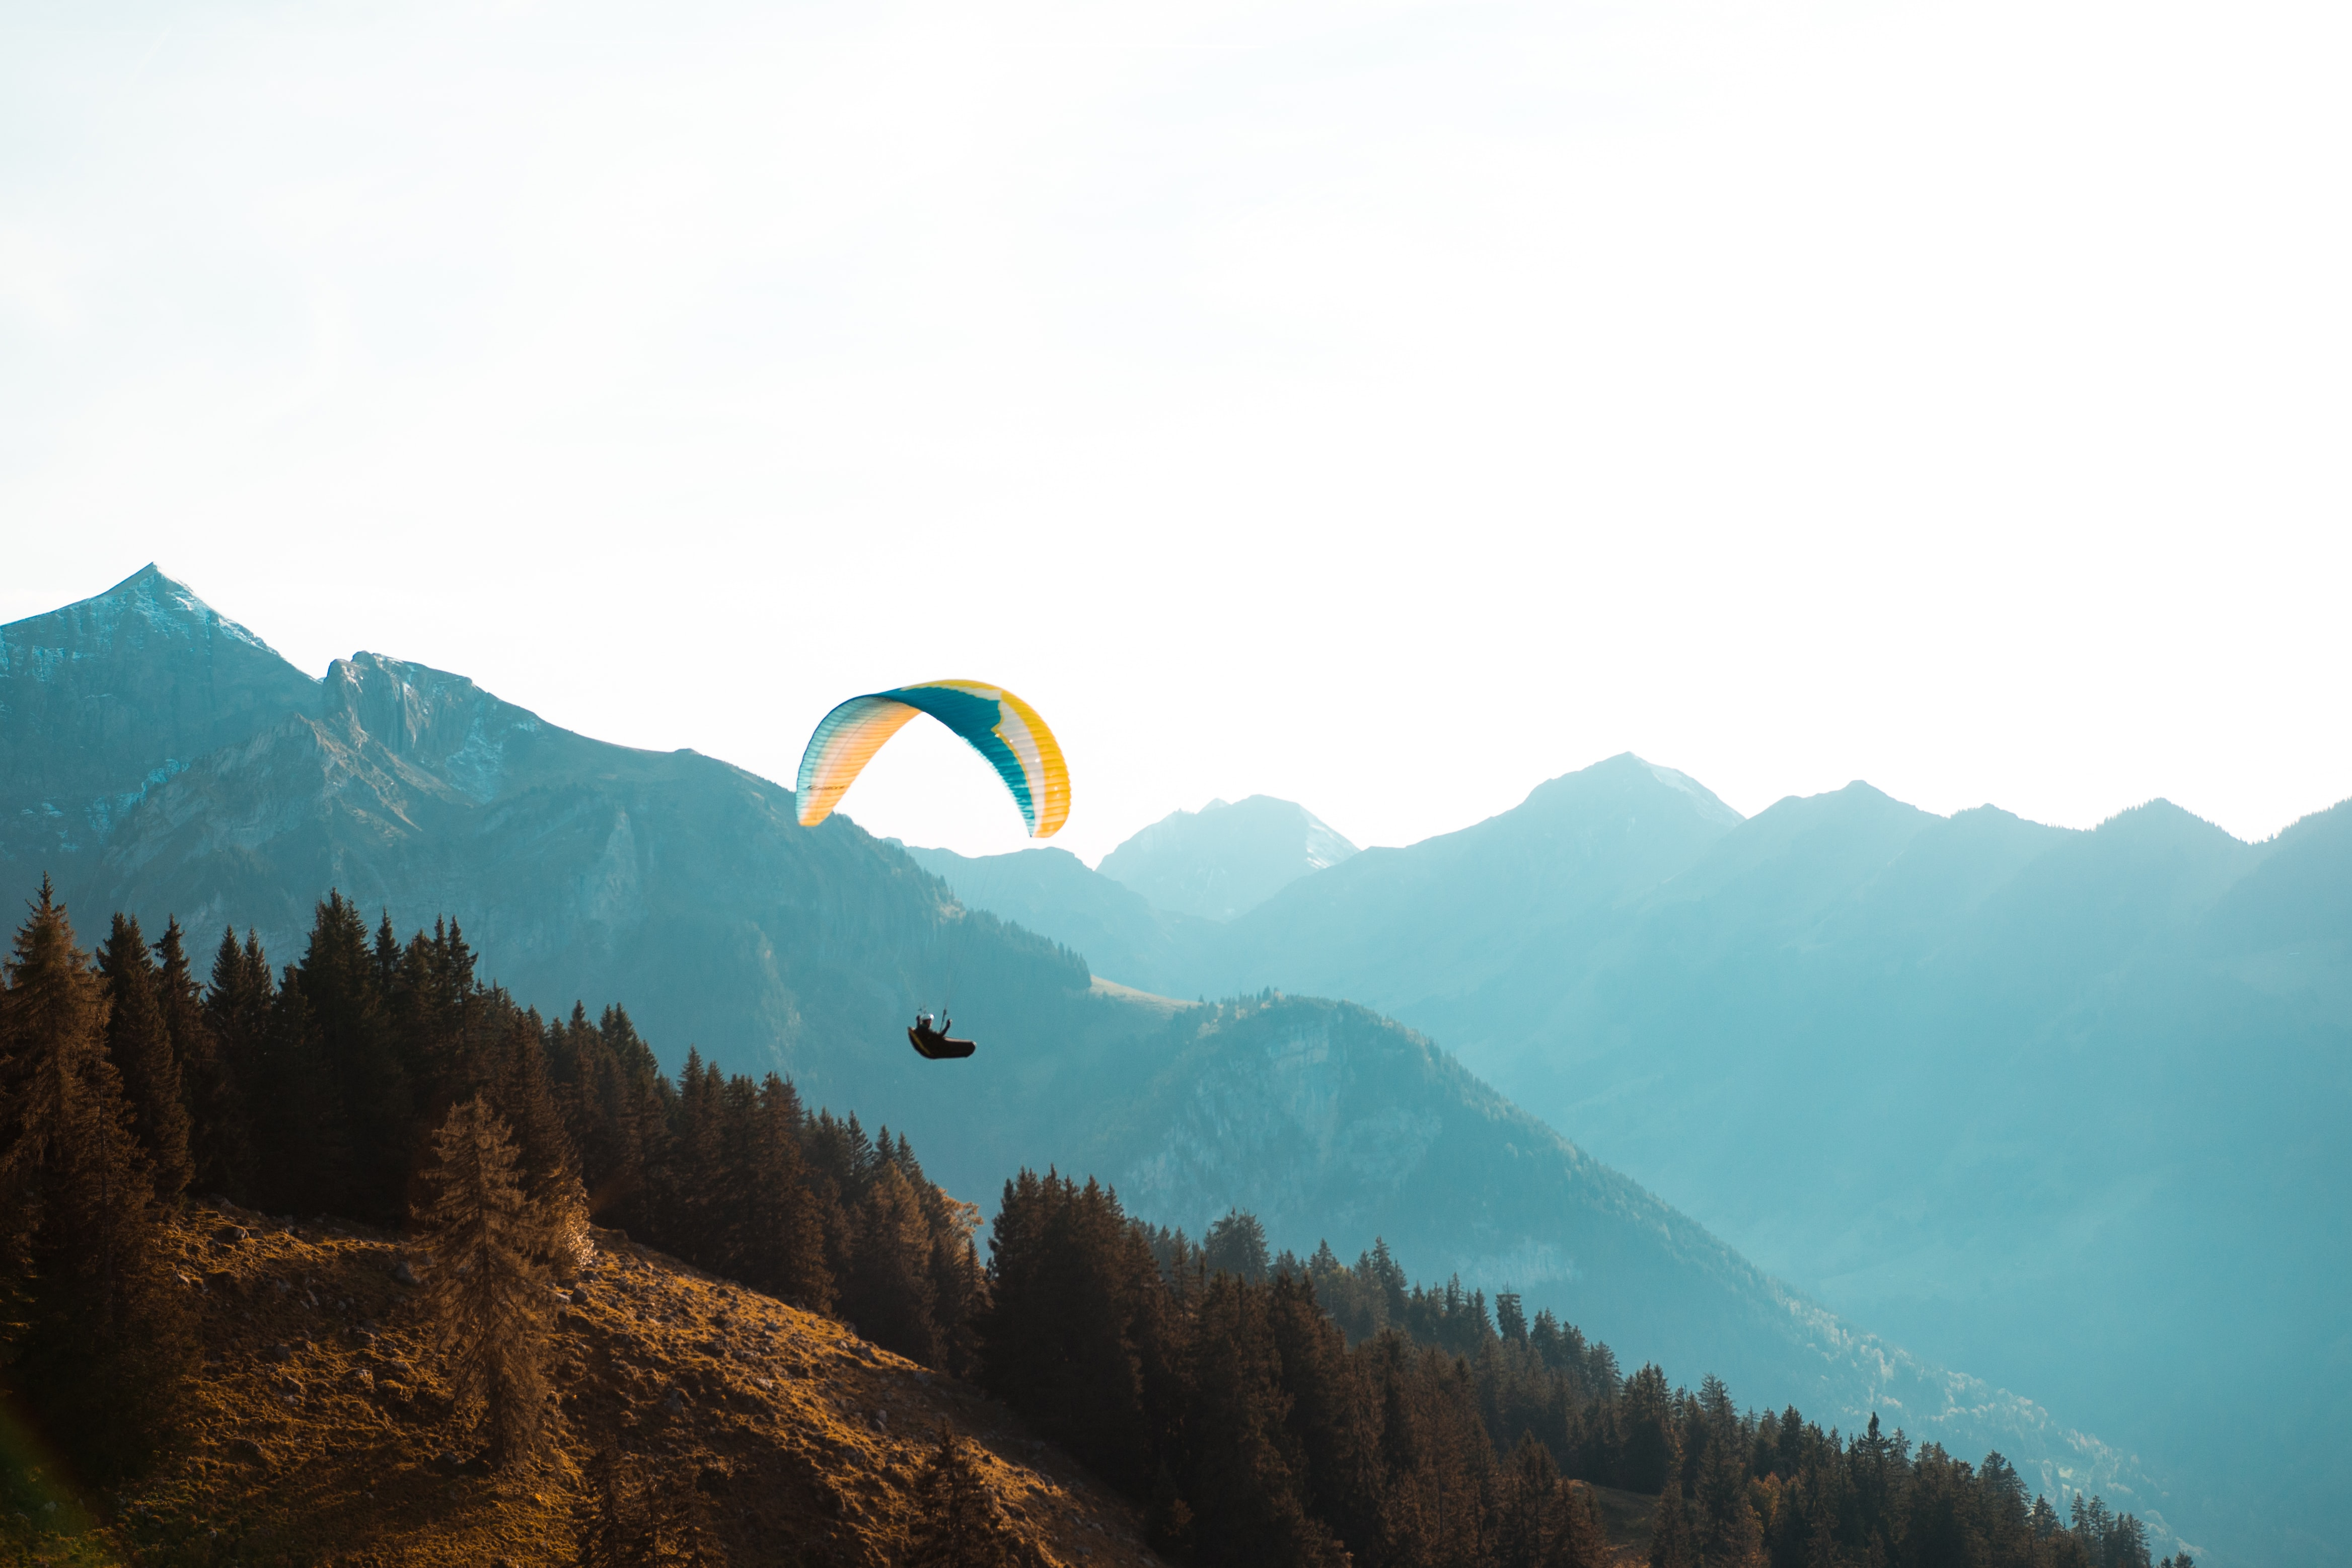 person paragliding near mountain at daytime